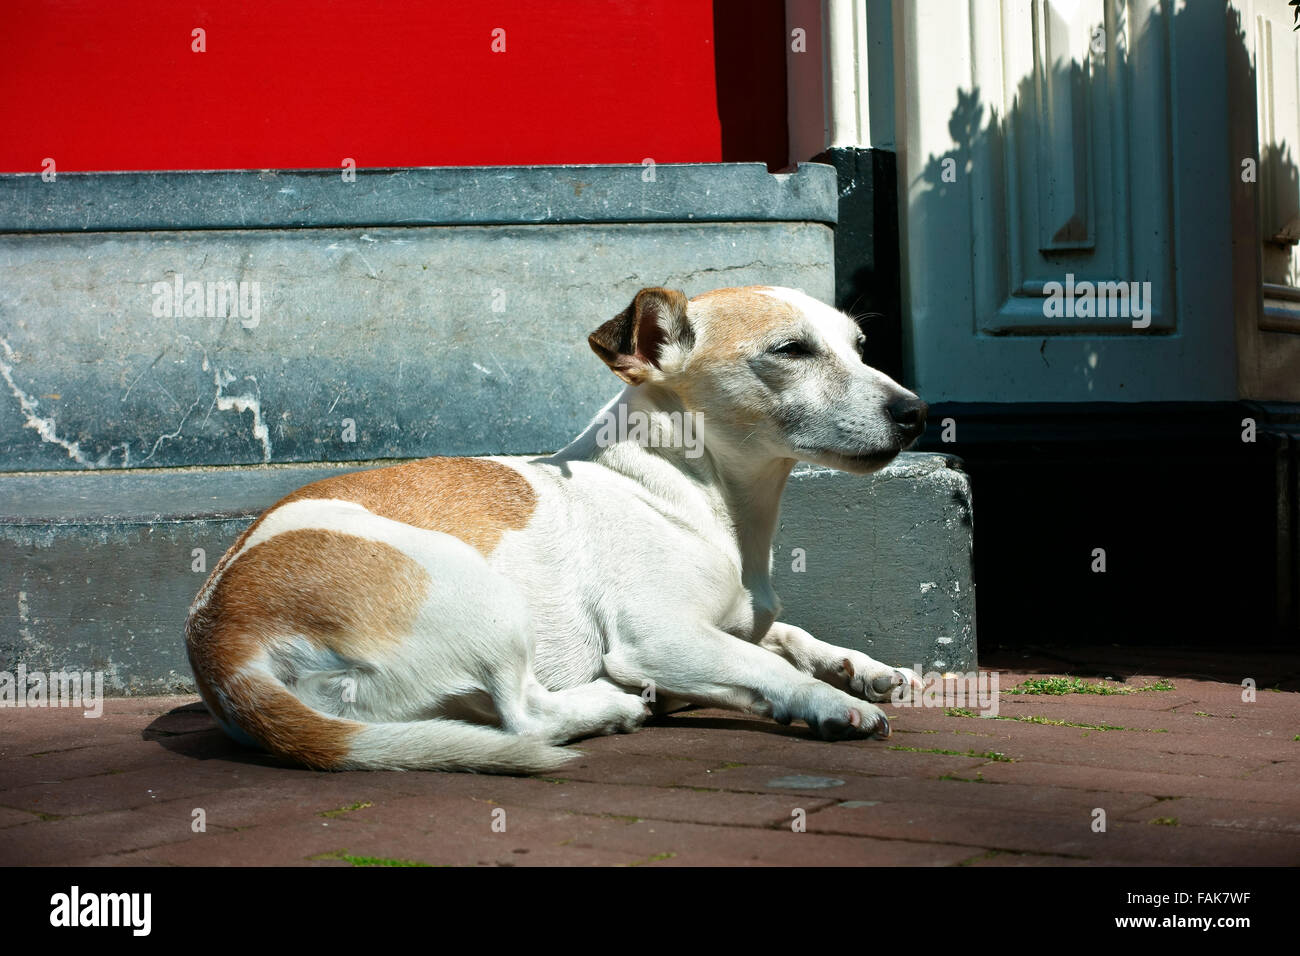 A dog lying on the ground - Stock Image